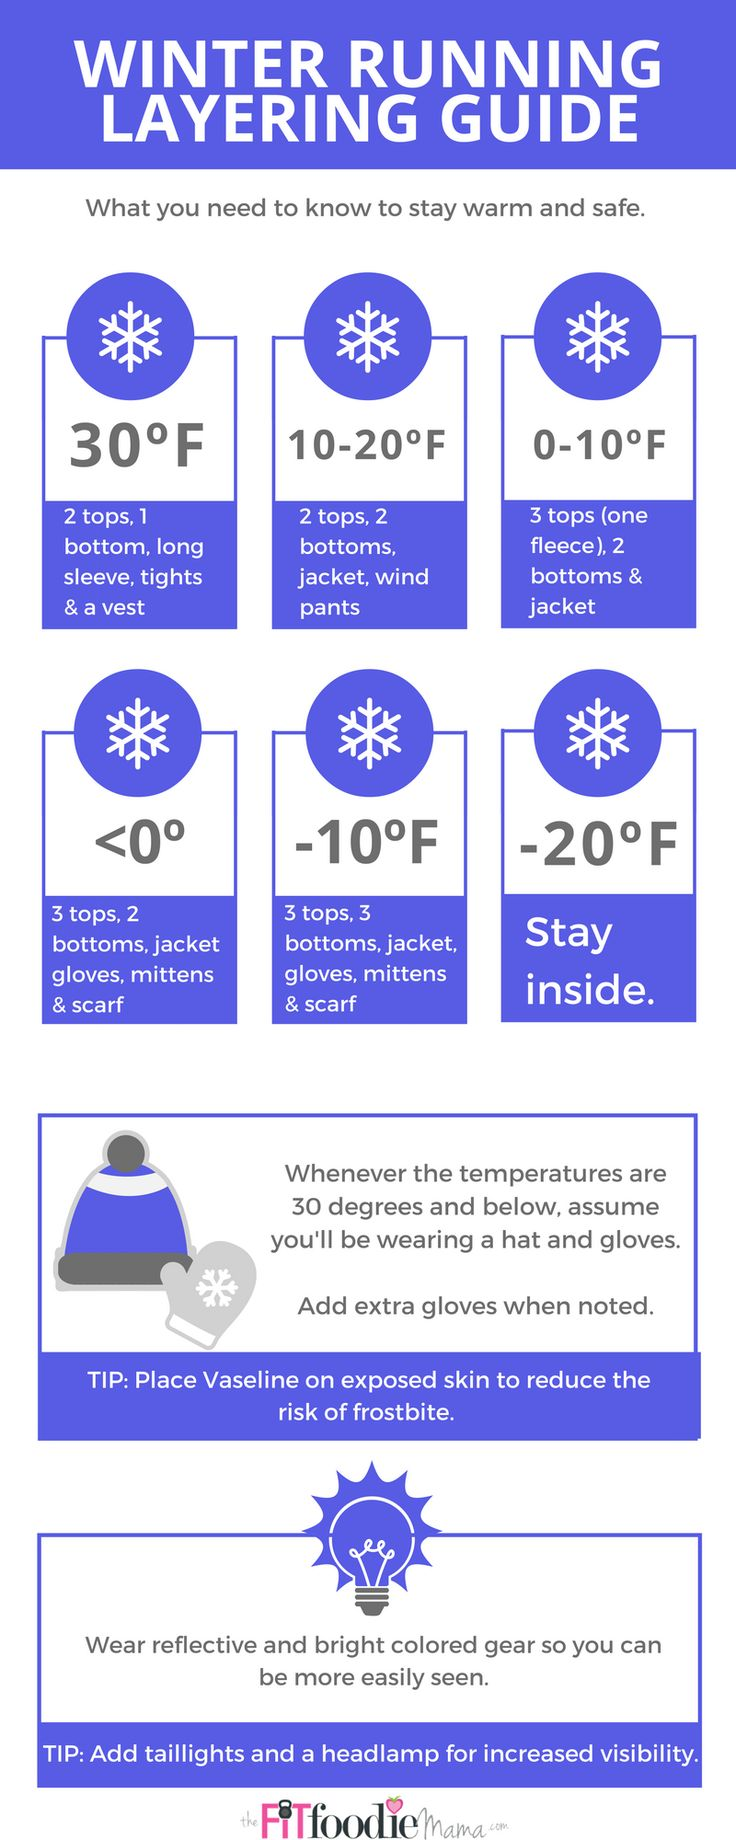 Winter Running Layering Guide: What to Wear to Stay Warm & Safe.